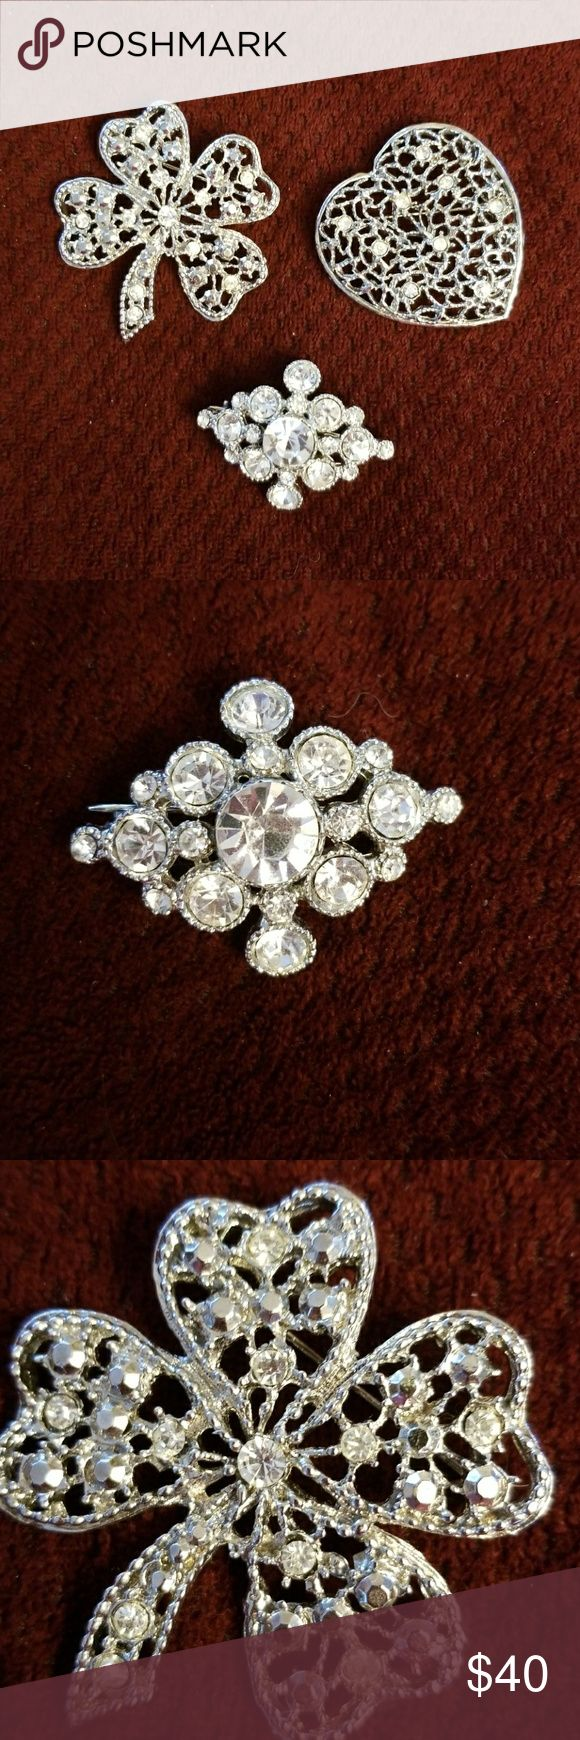 Bling  broochez😉💎 Set of 3 silver plated Crystal encrusted pins circa 1960s. Excellent condition !  Worn all together  for glam in the am or pm! Jewelry